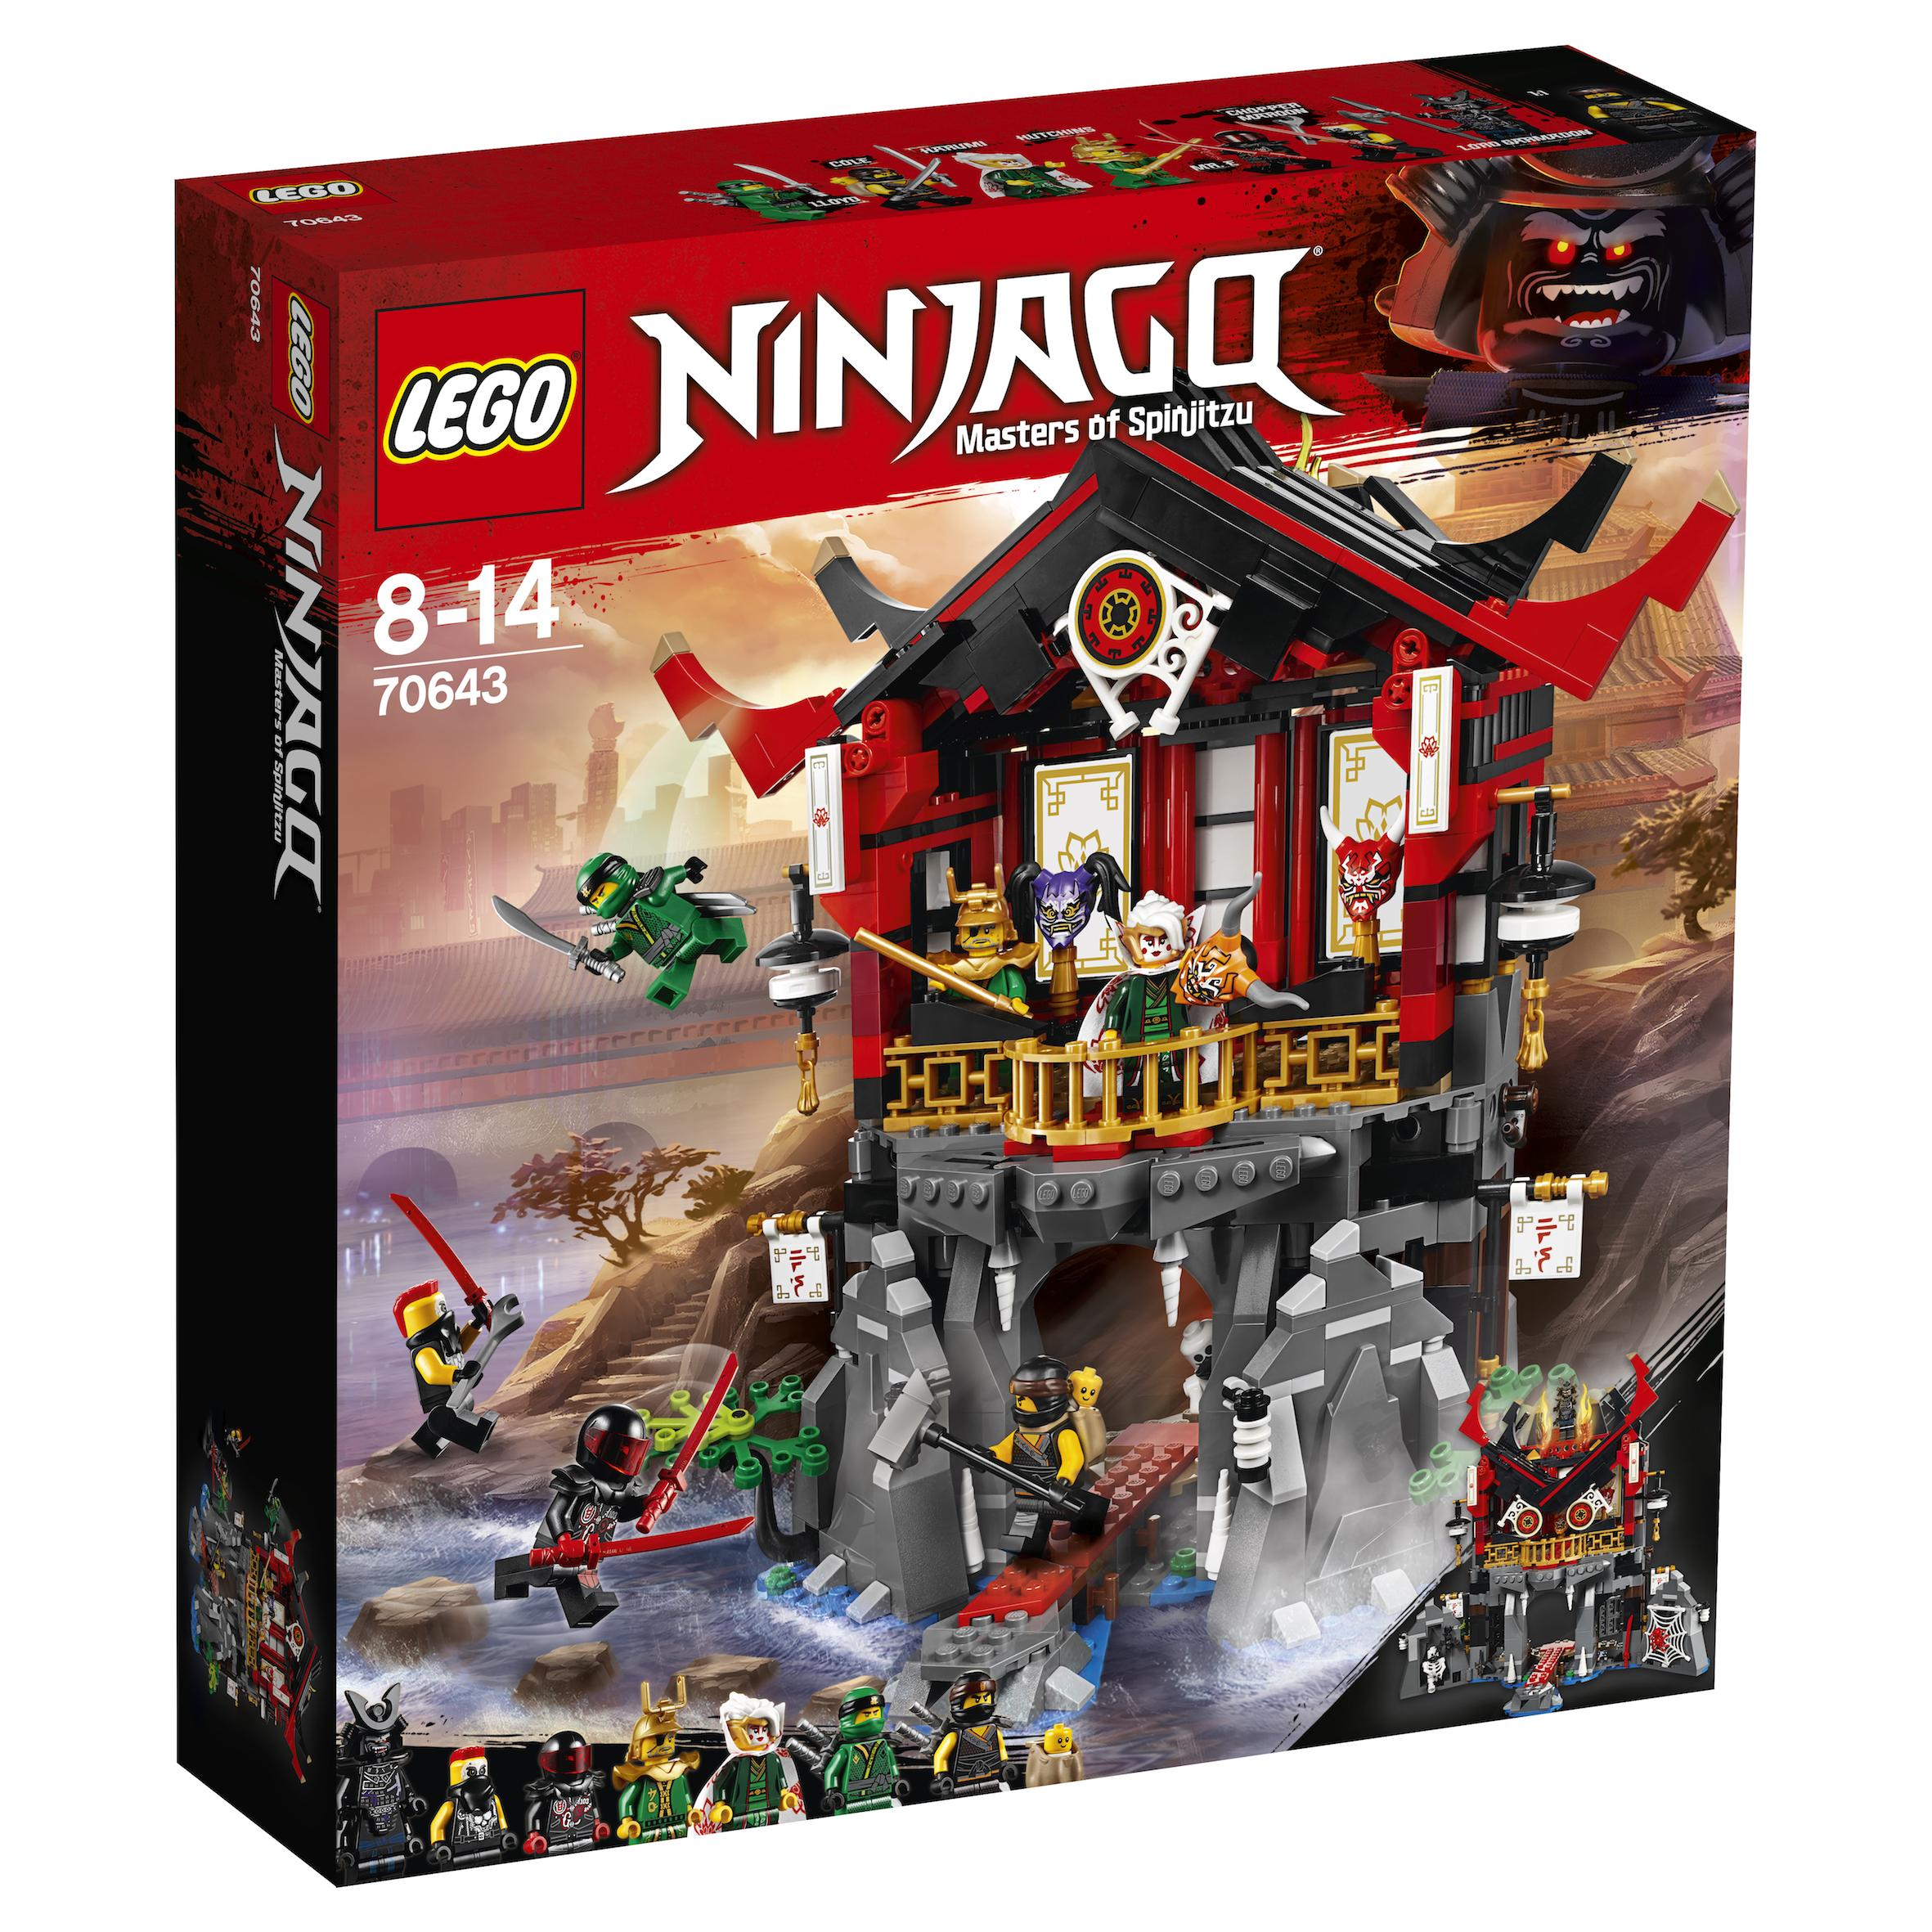 Lego Ninjago Temple of Resurrection (70643)